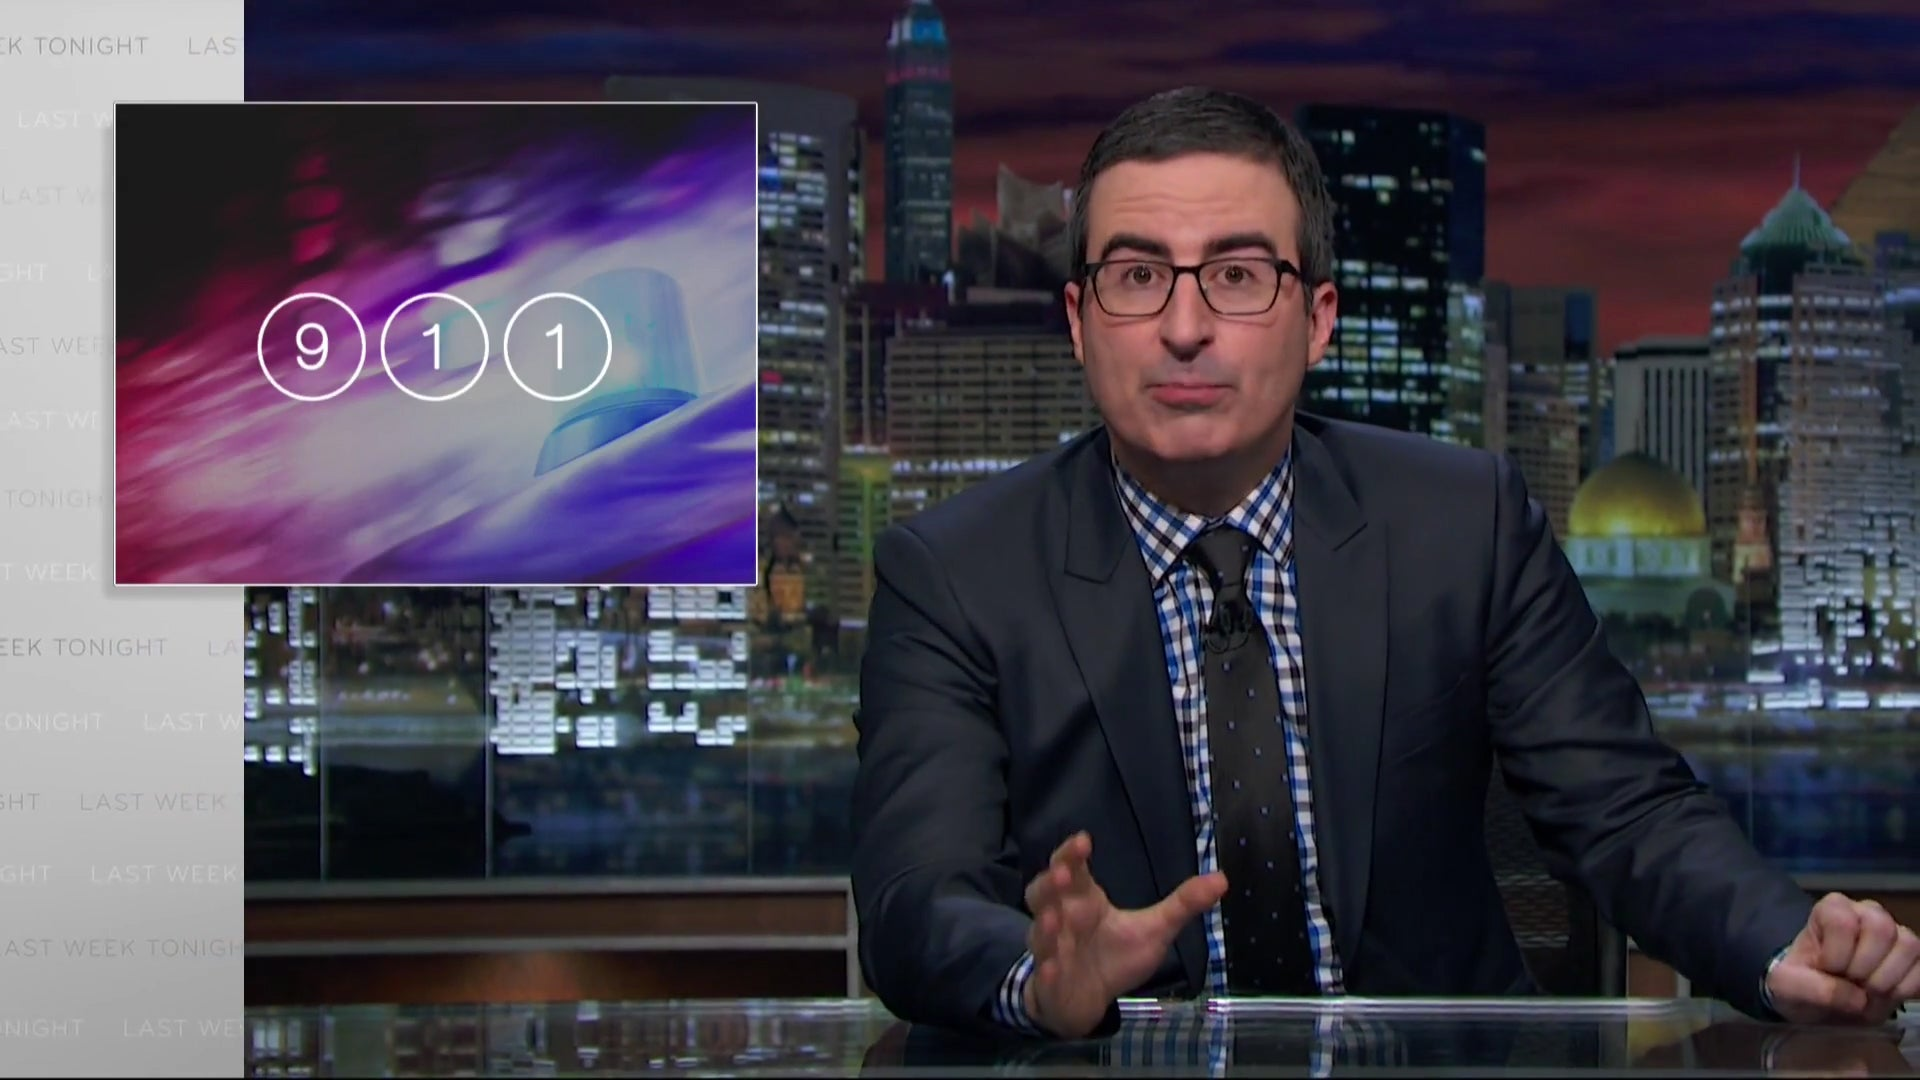 John Oliver on the problems facing the 911 System